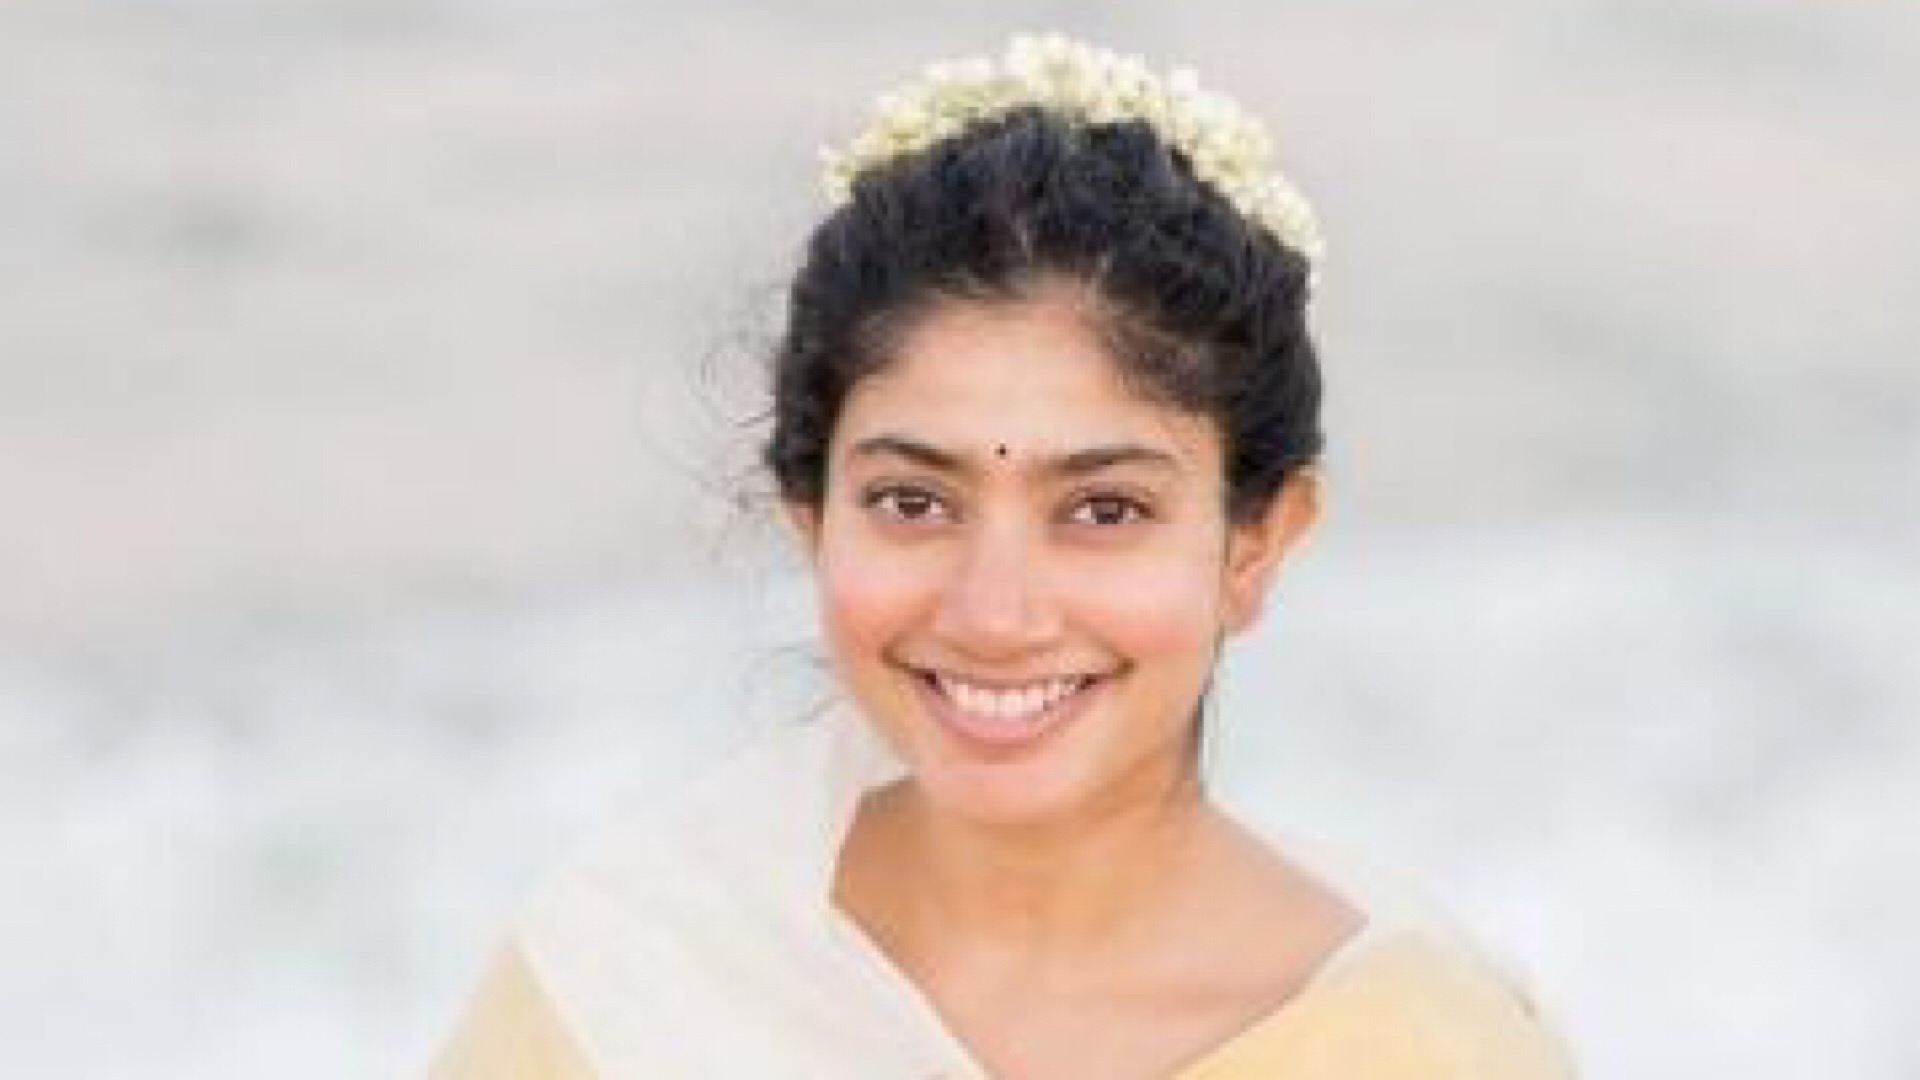 Love Story star Sai Pallavi's plans of her medical profession